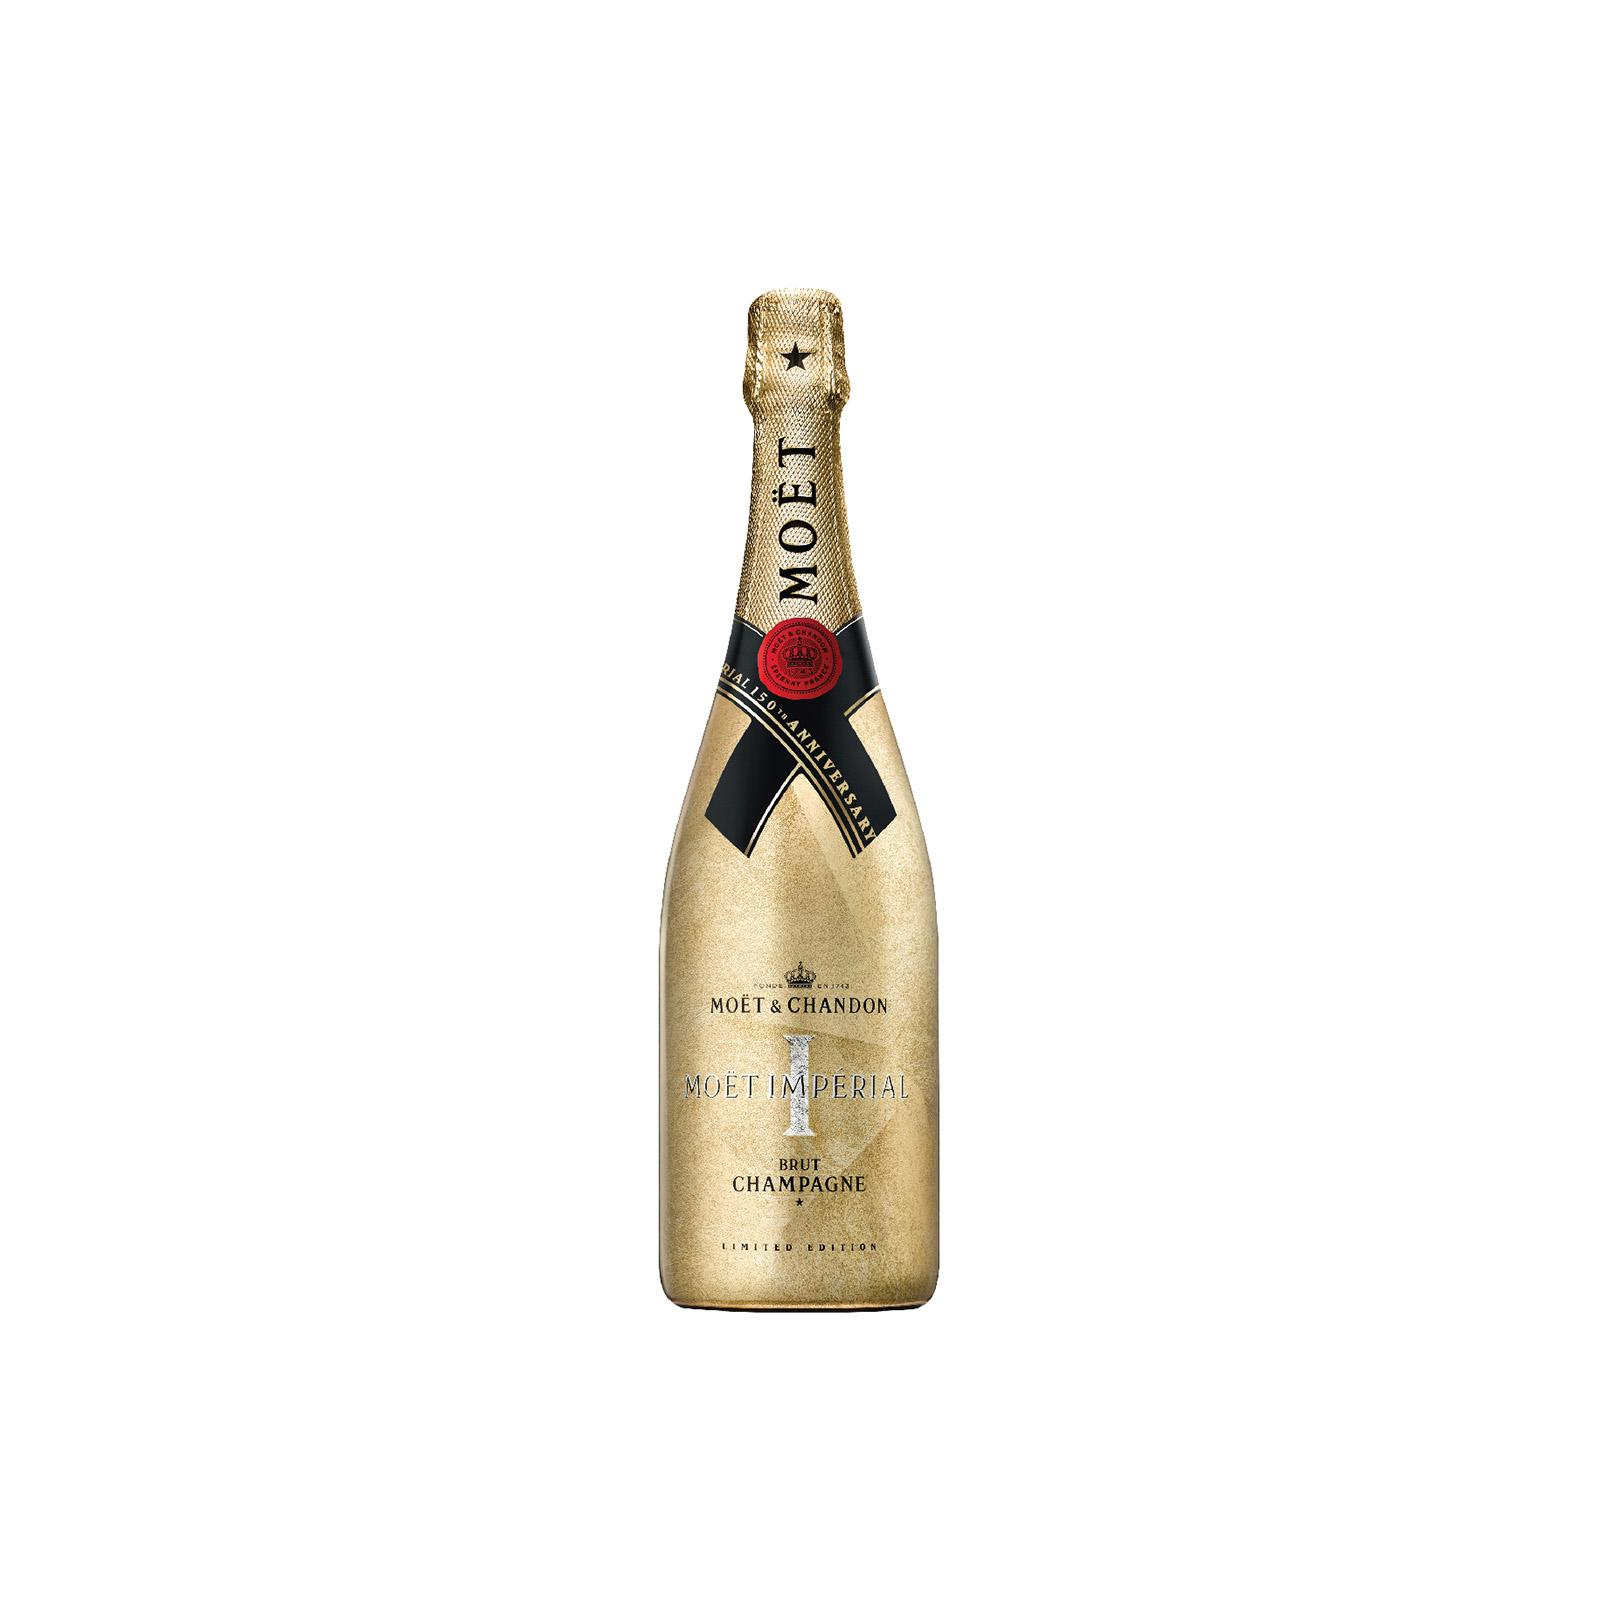 Moet & Chandon Brut Imperial Champagne (Limited Edition - Gold Sleeve)